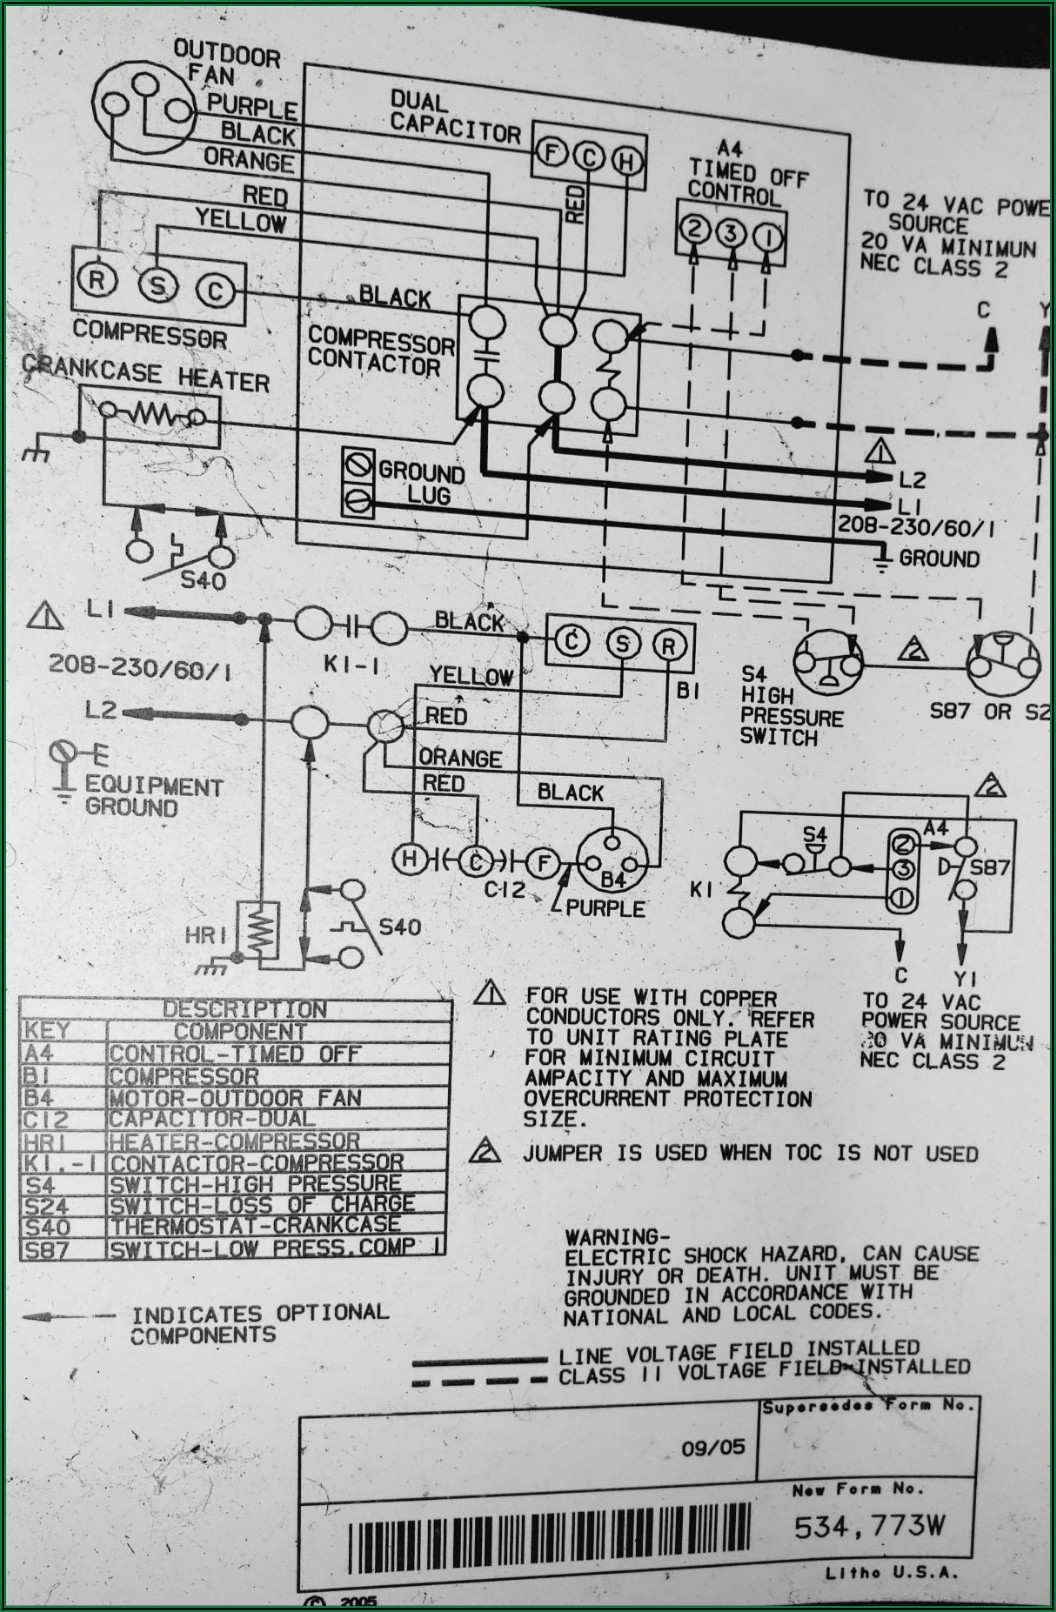 Compressor Wiring Diagram With Start Capacitor